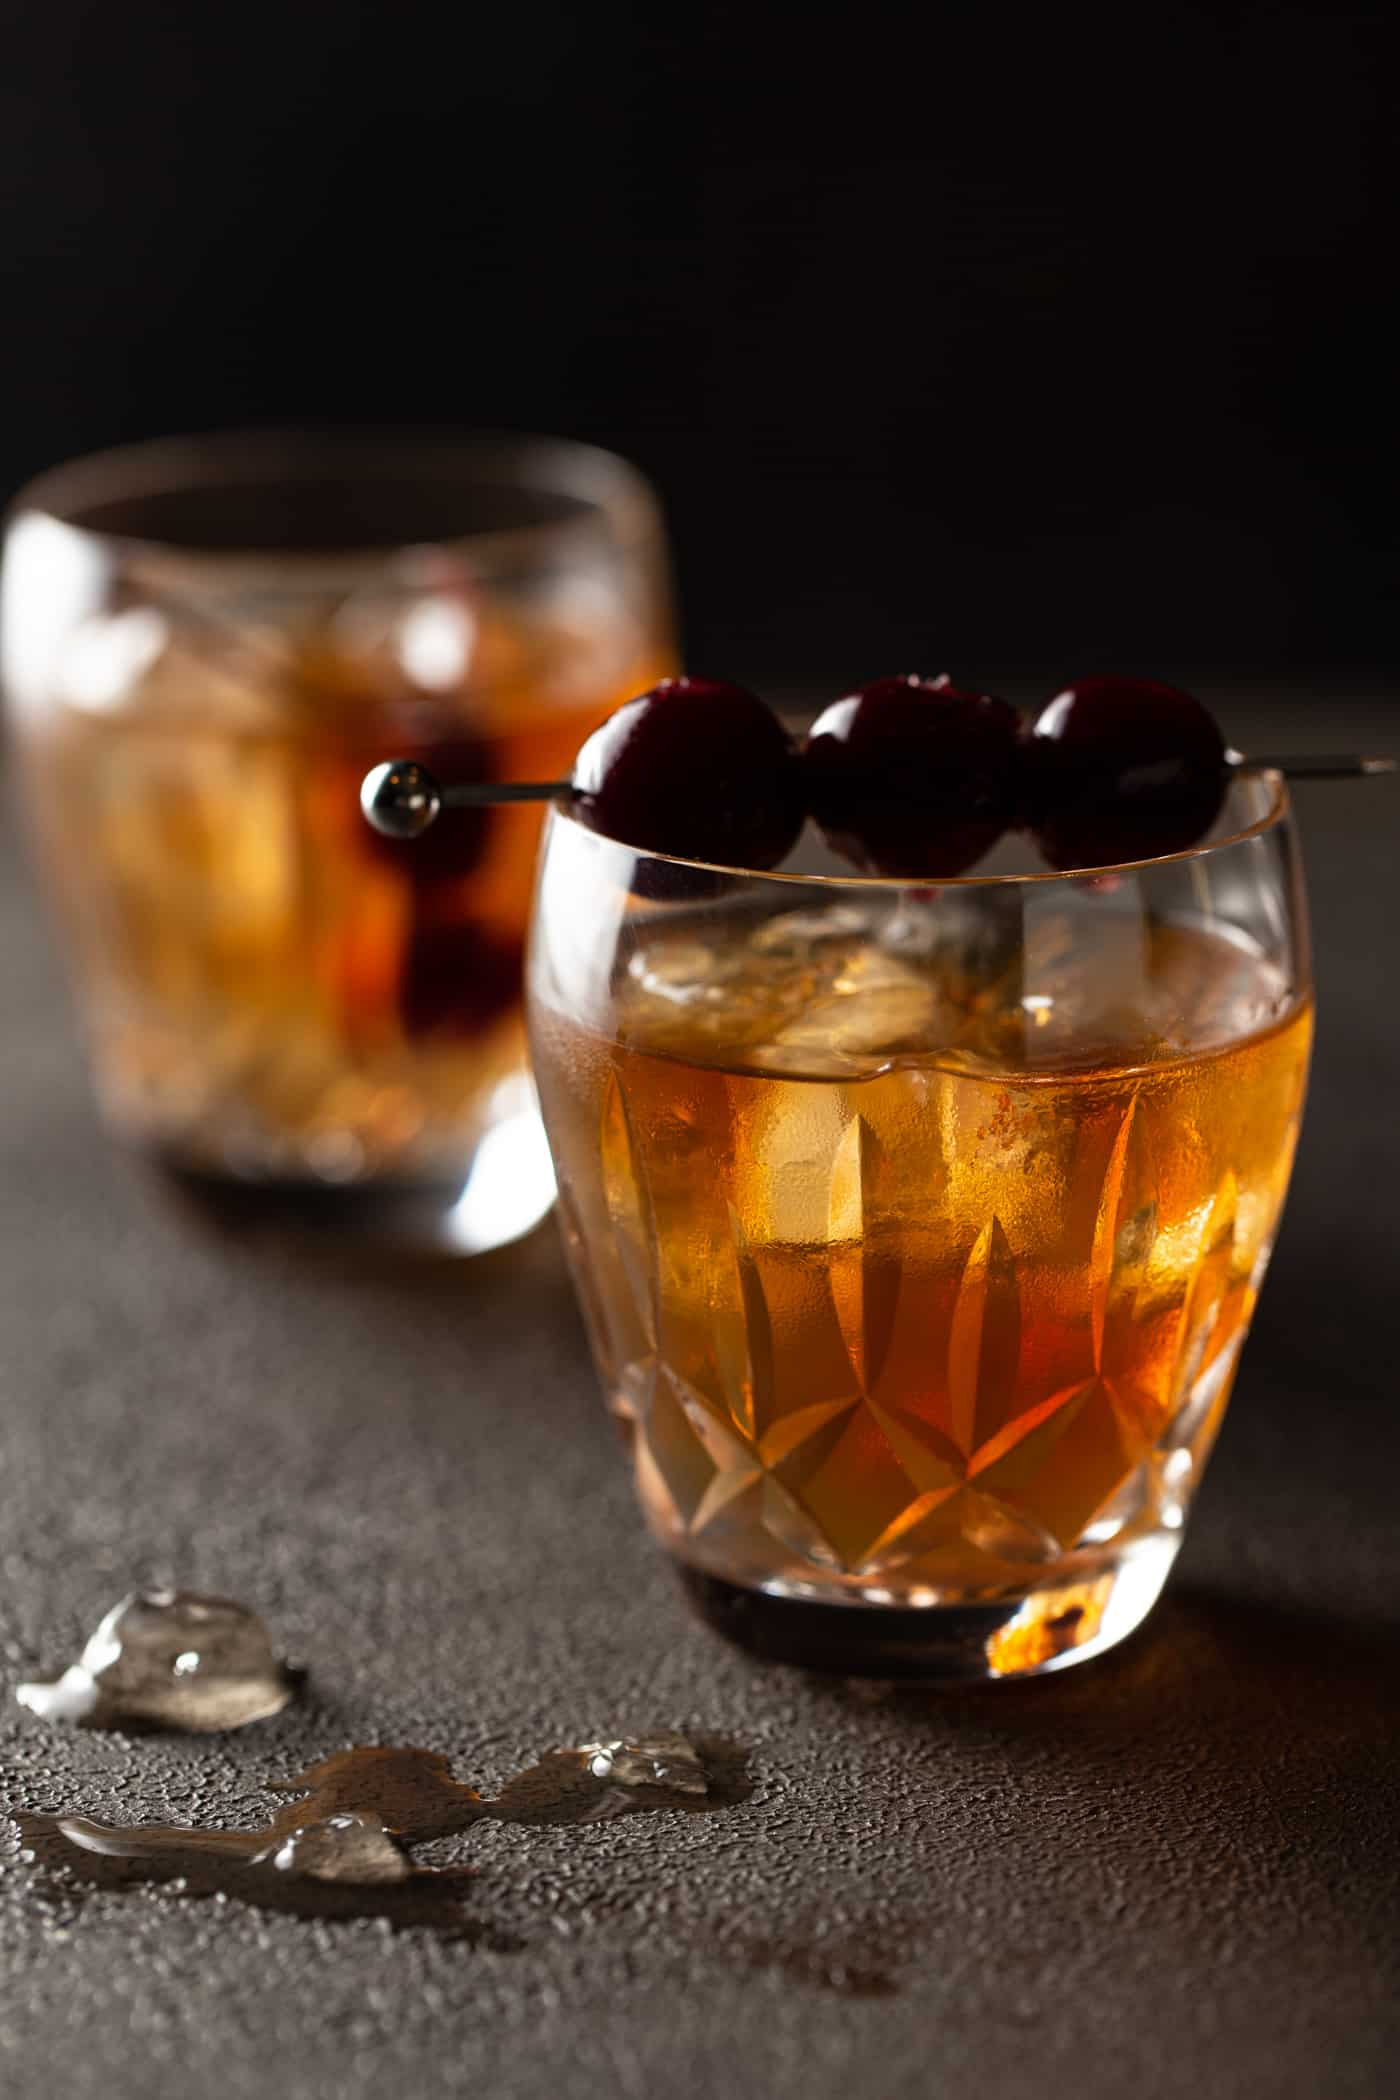 2 crystal glasses filled with ice, bourbon and a skewer of cherries for garnish on a dark background.